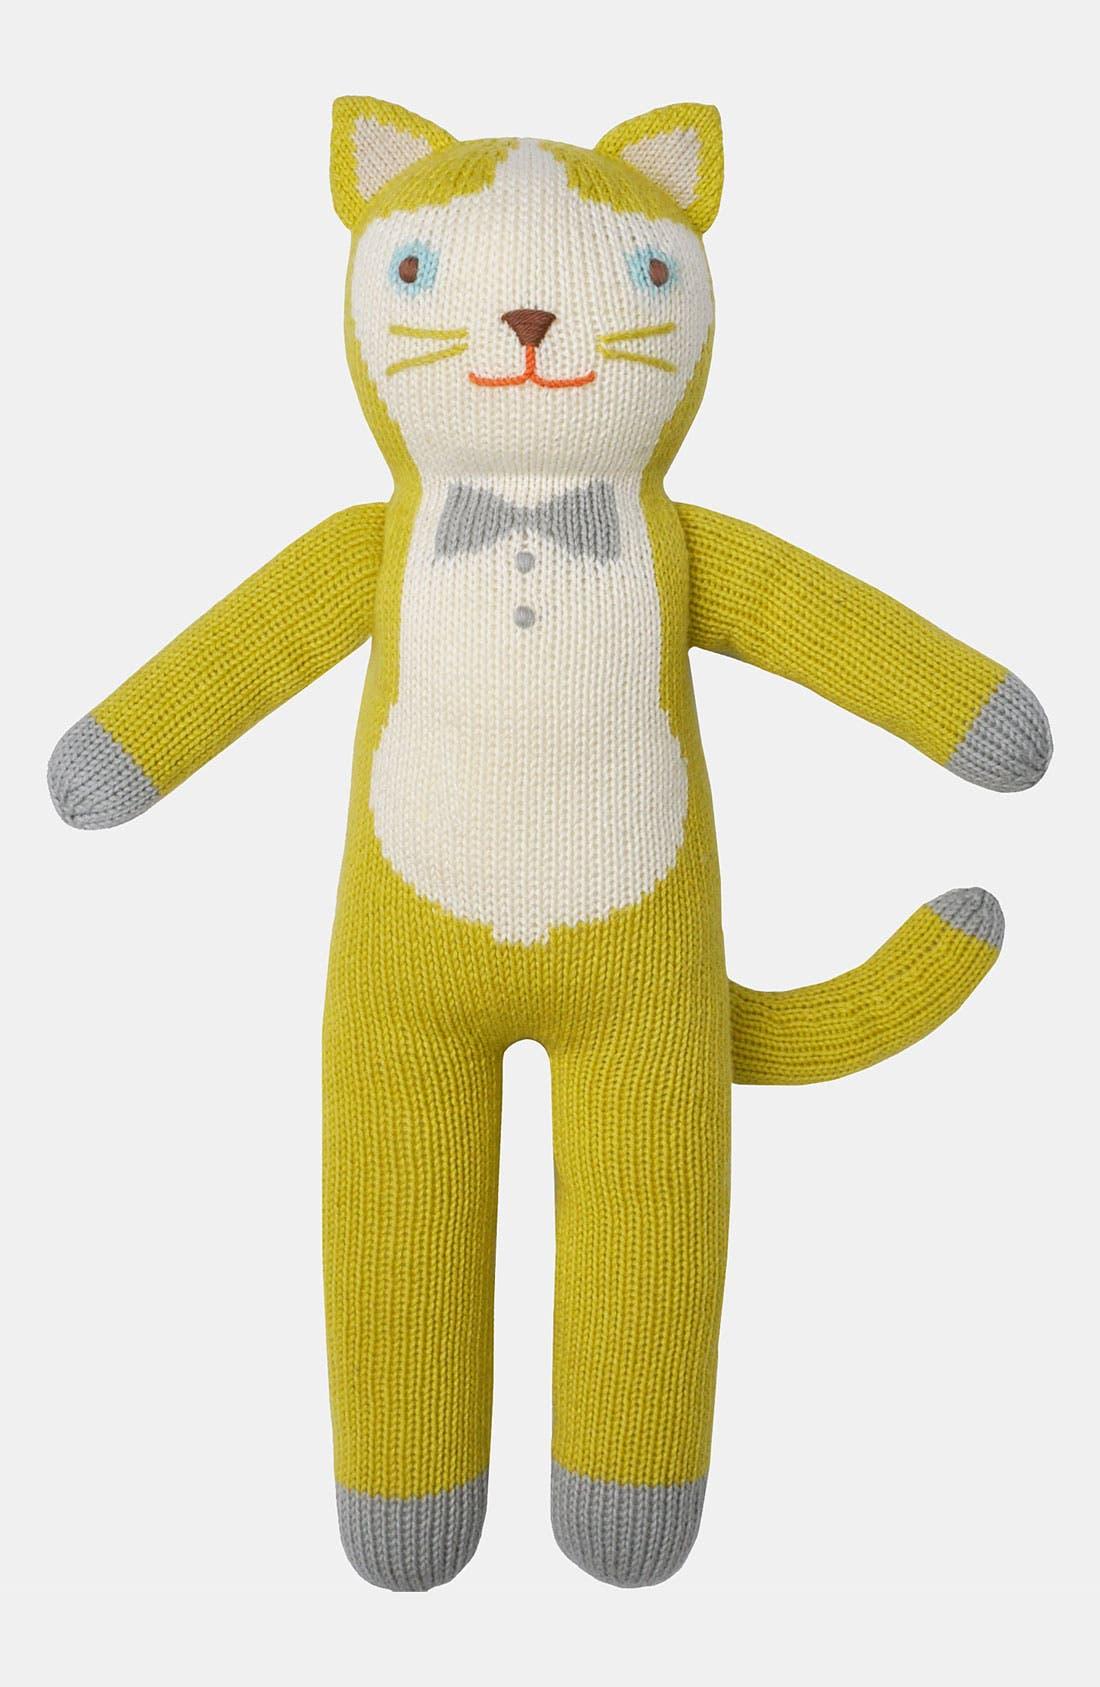 Main Image - Blabla 'Theo the Cat' Knit Doll